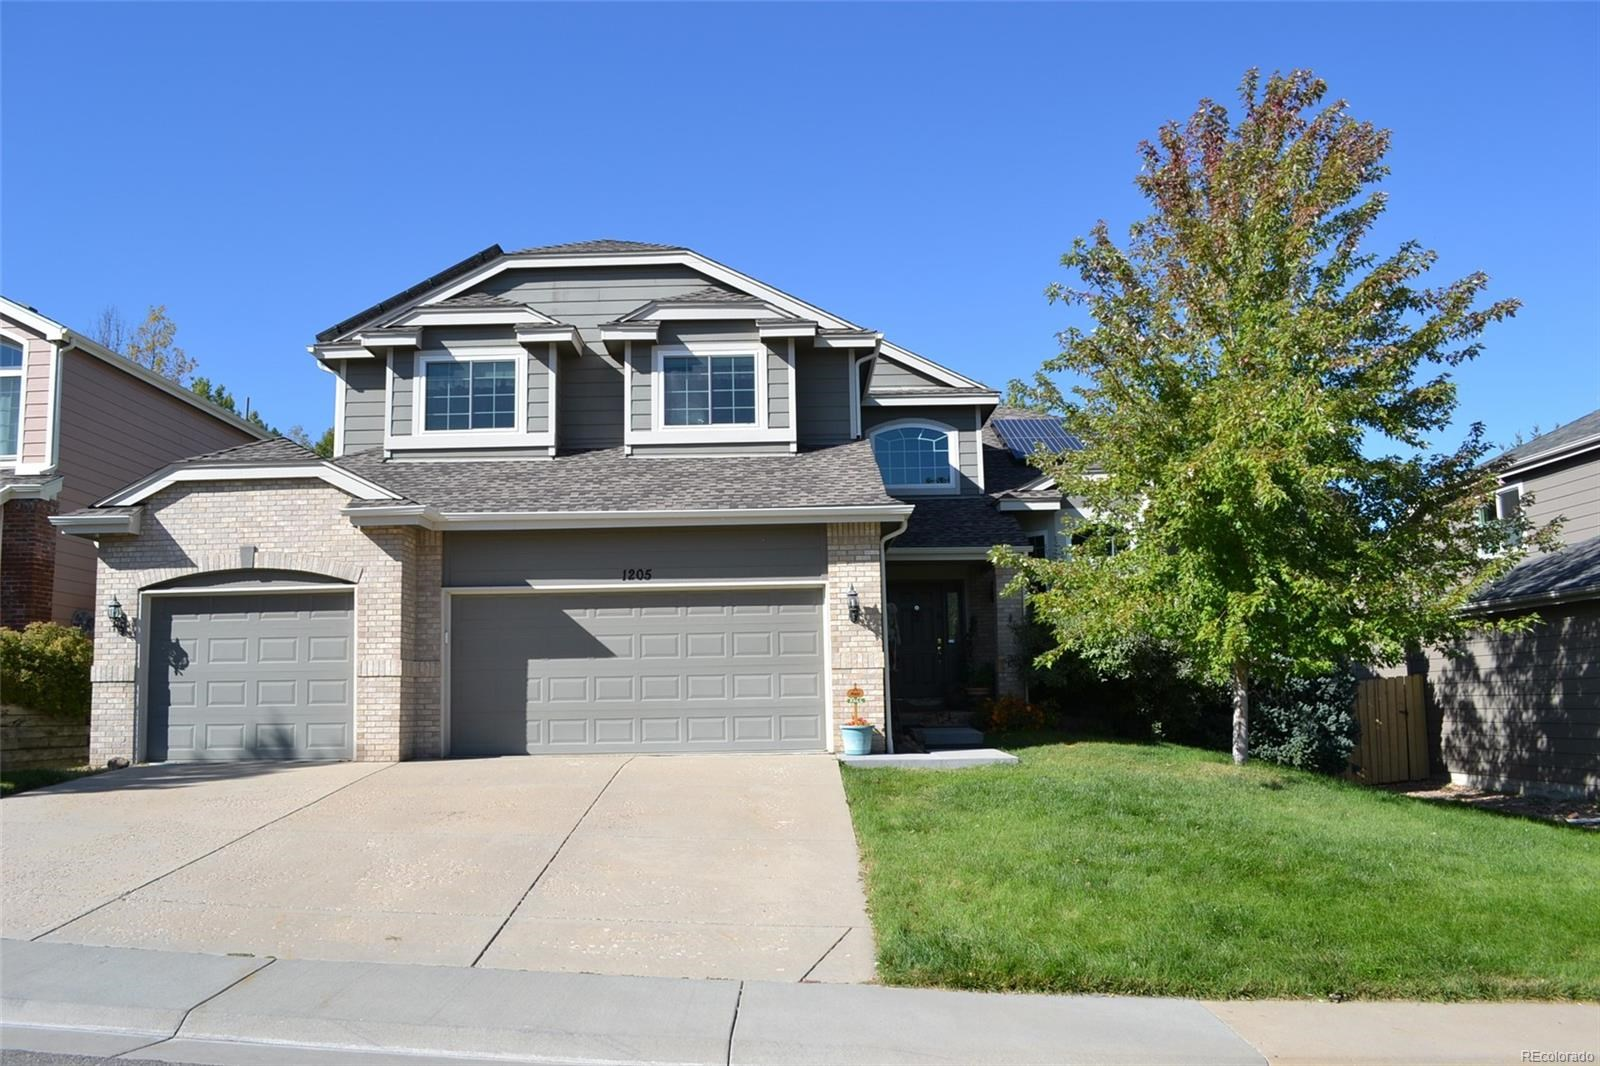 MLS# 8309835 - 1 - 1205 Imperial Way, Superior, CO 80027